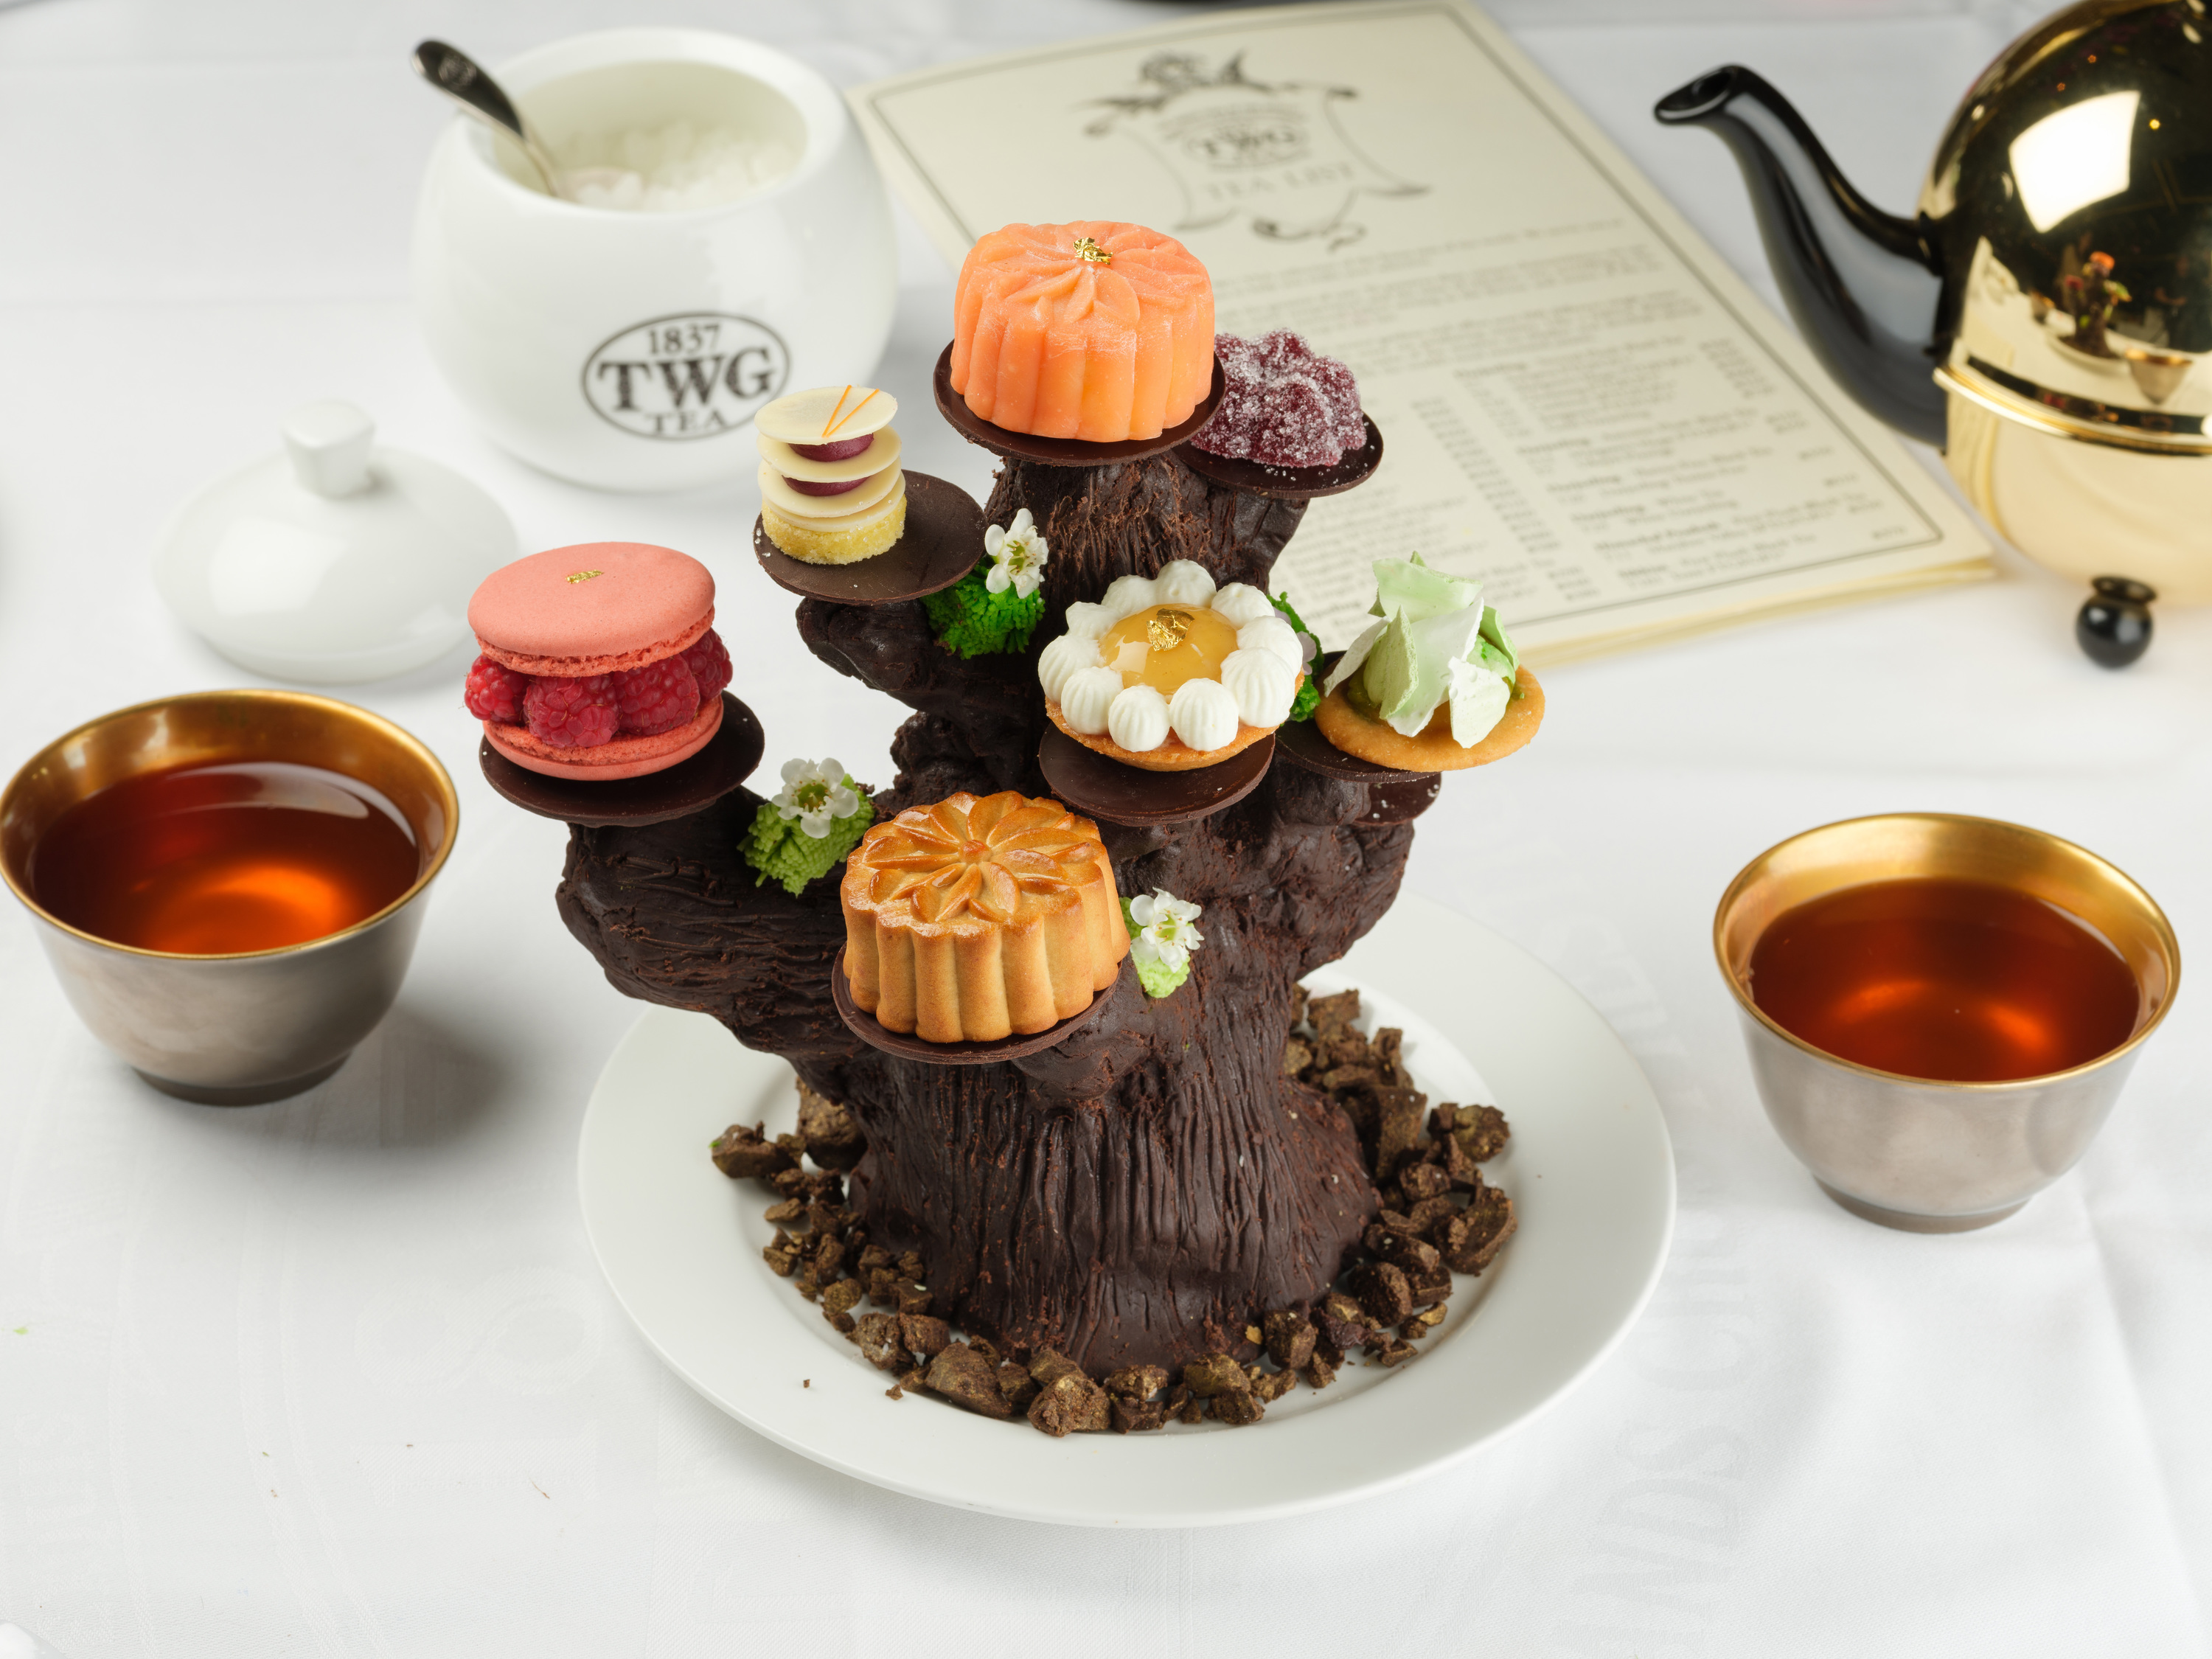 TWG Tea introduces Moon Tree set for this mooncake season